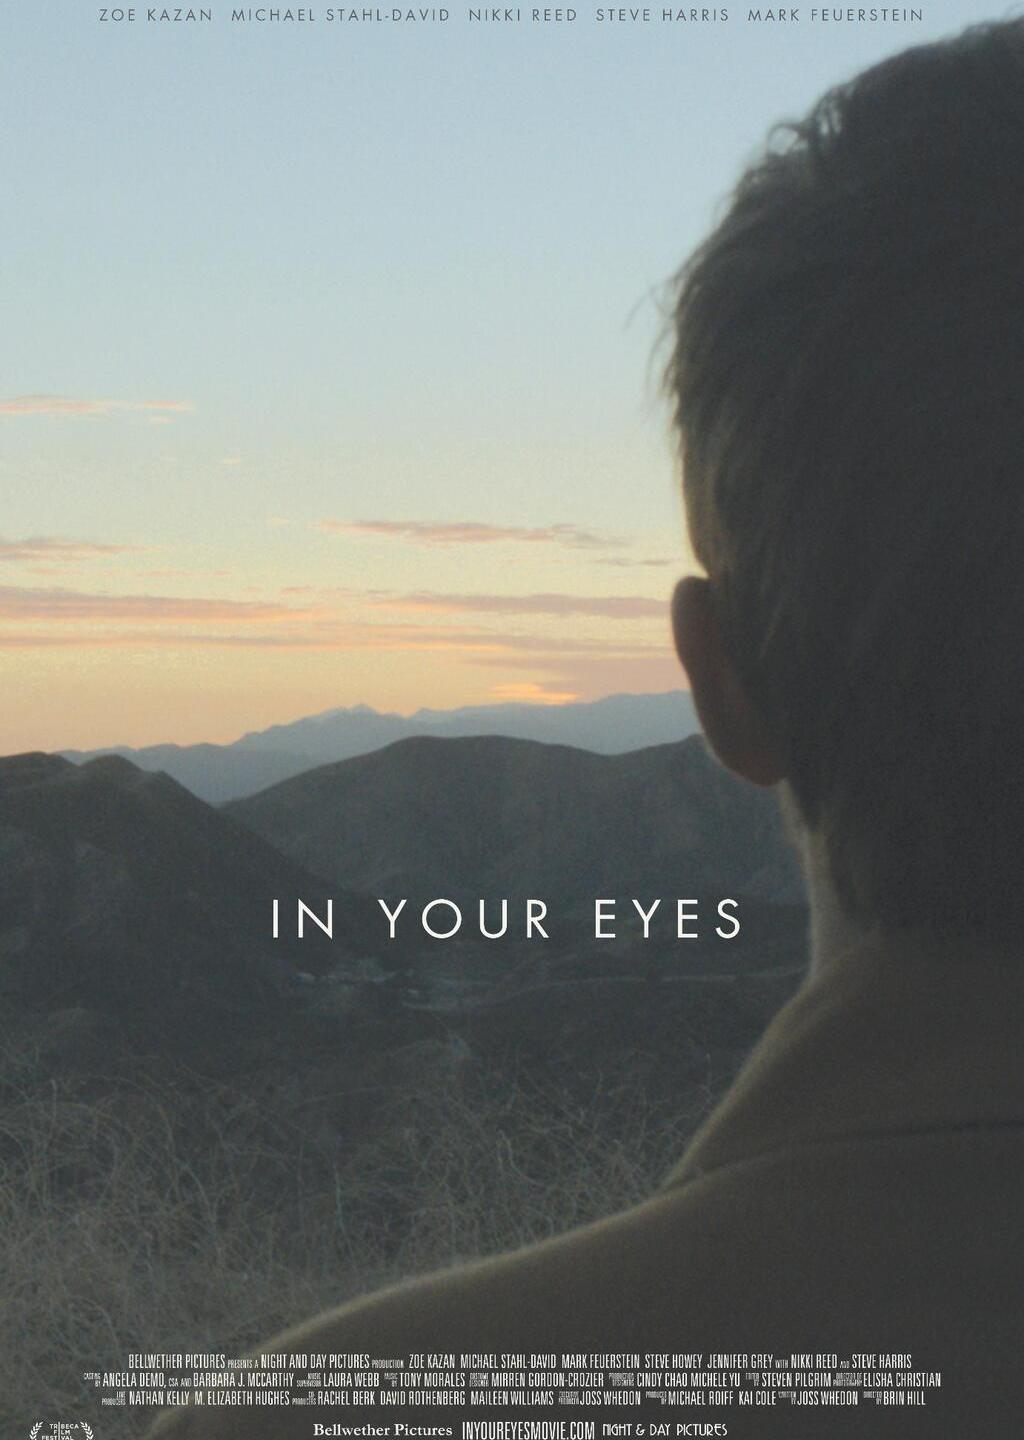 In Your Eyes Proves to be a Film as Notable as the Song